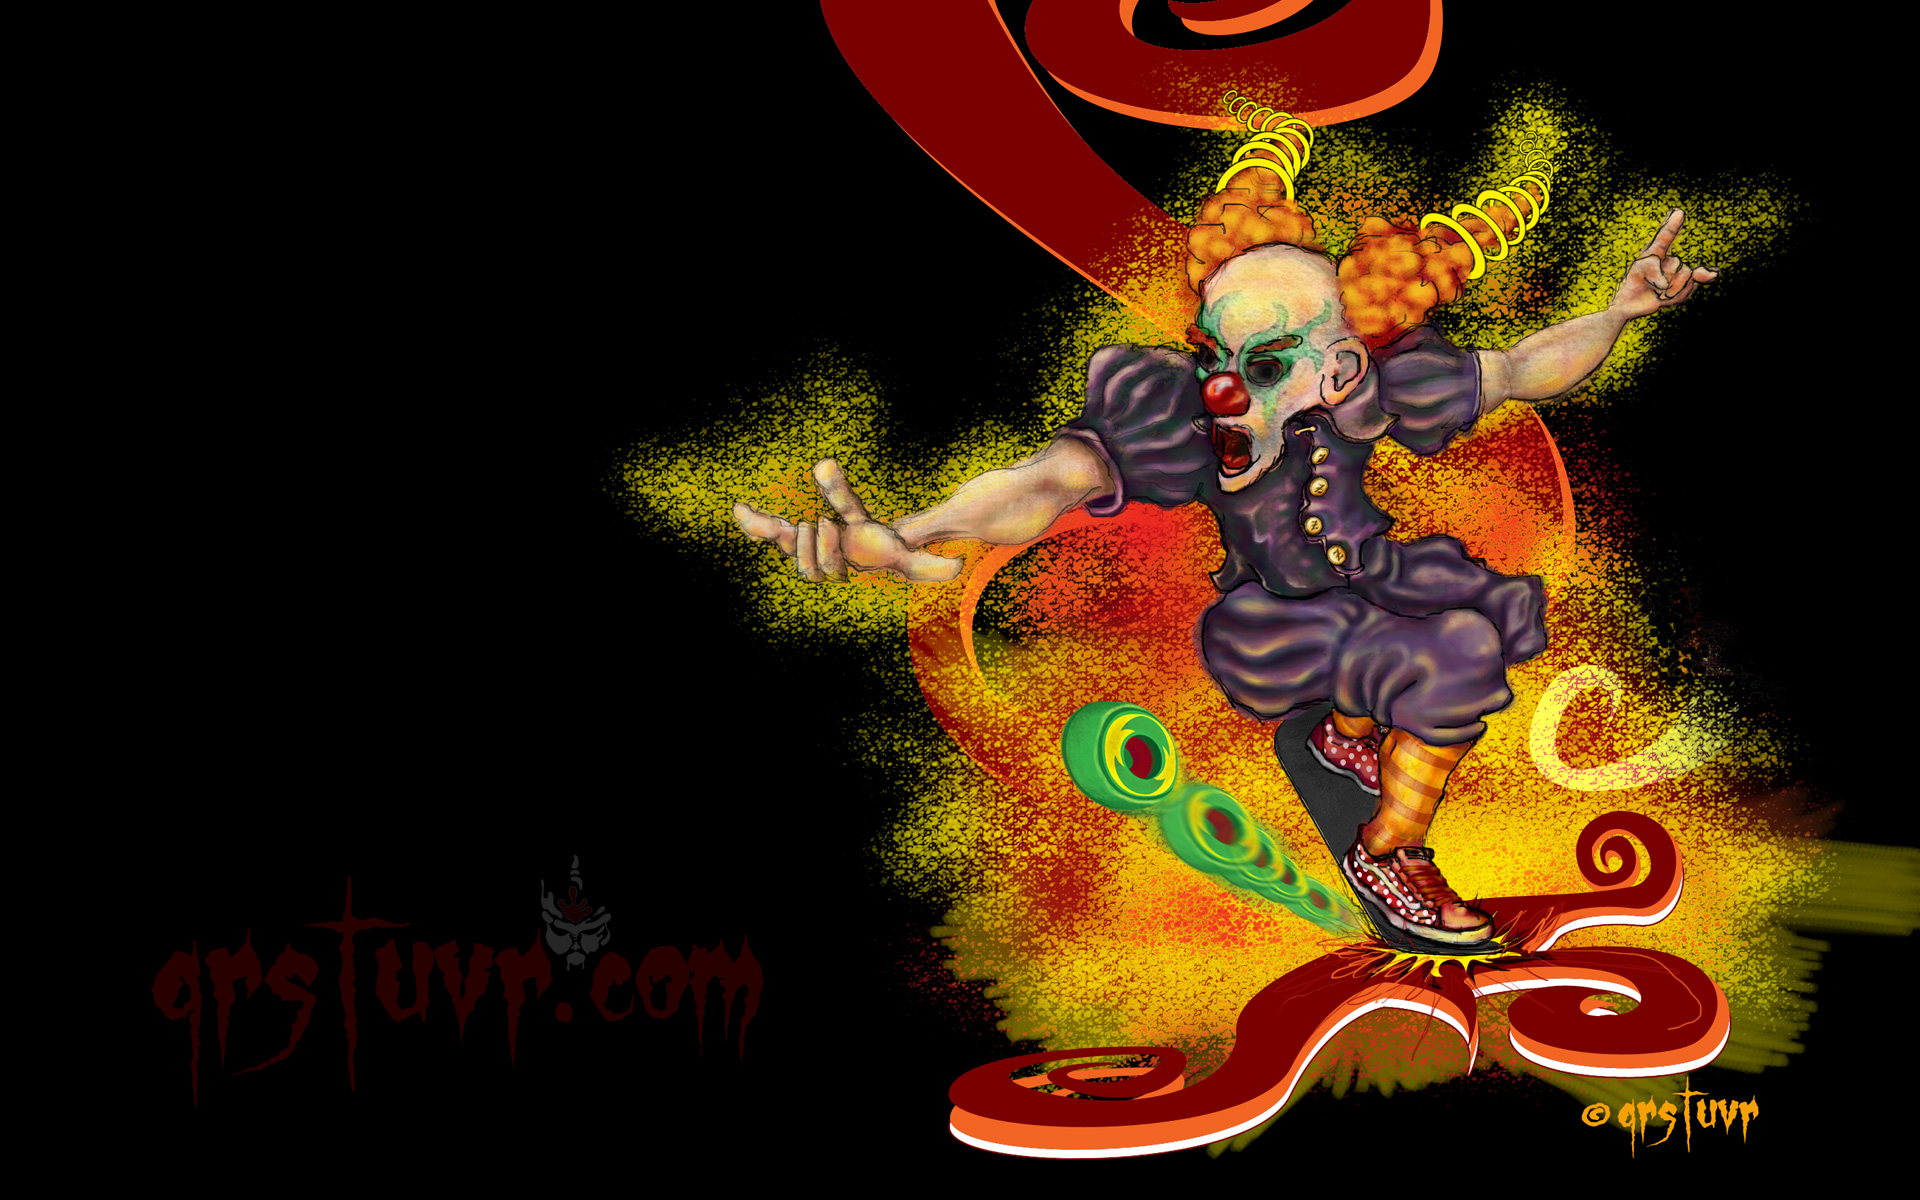 Download Skate Clown On White Background Crazy Front Grinding And Busting His Deck